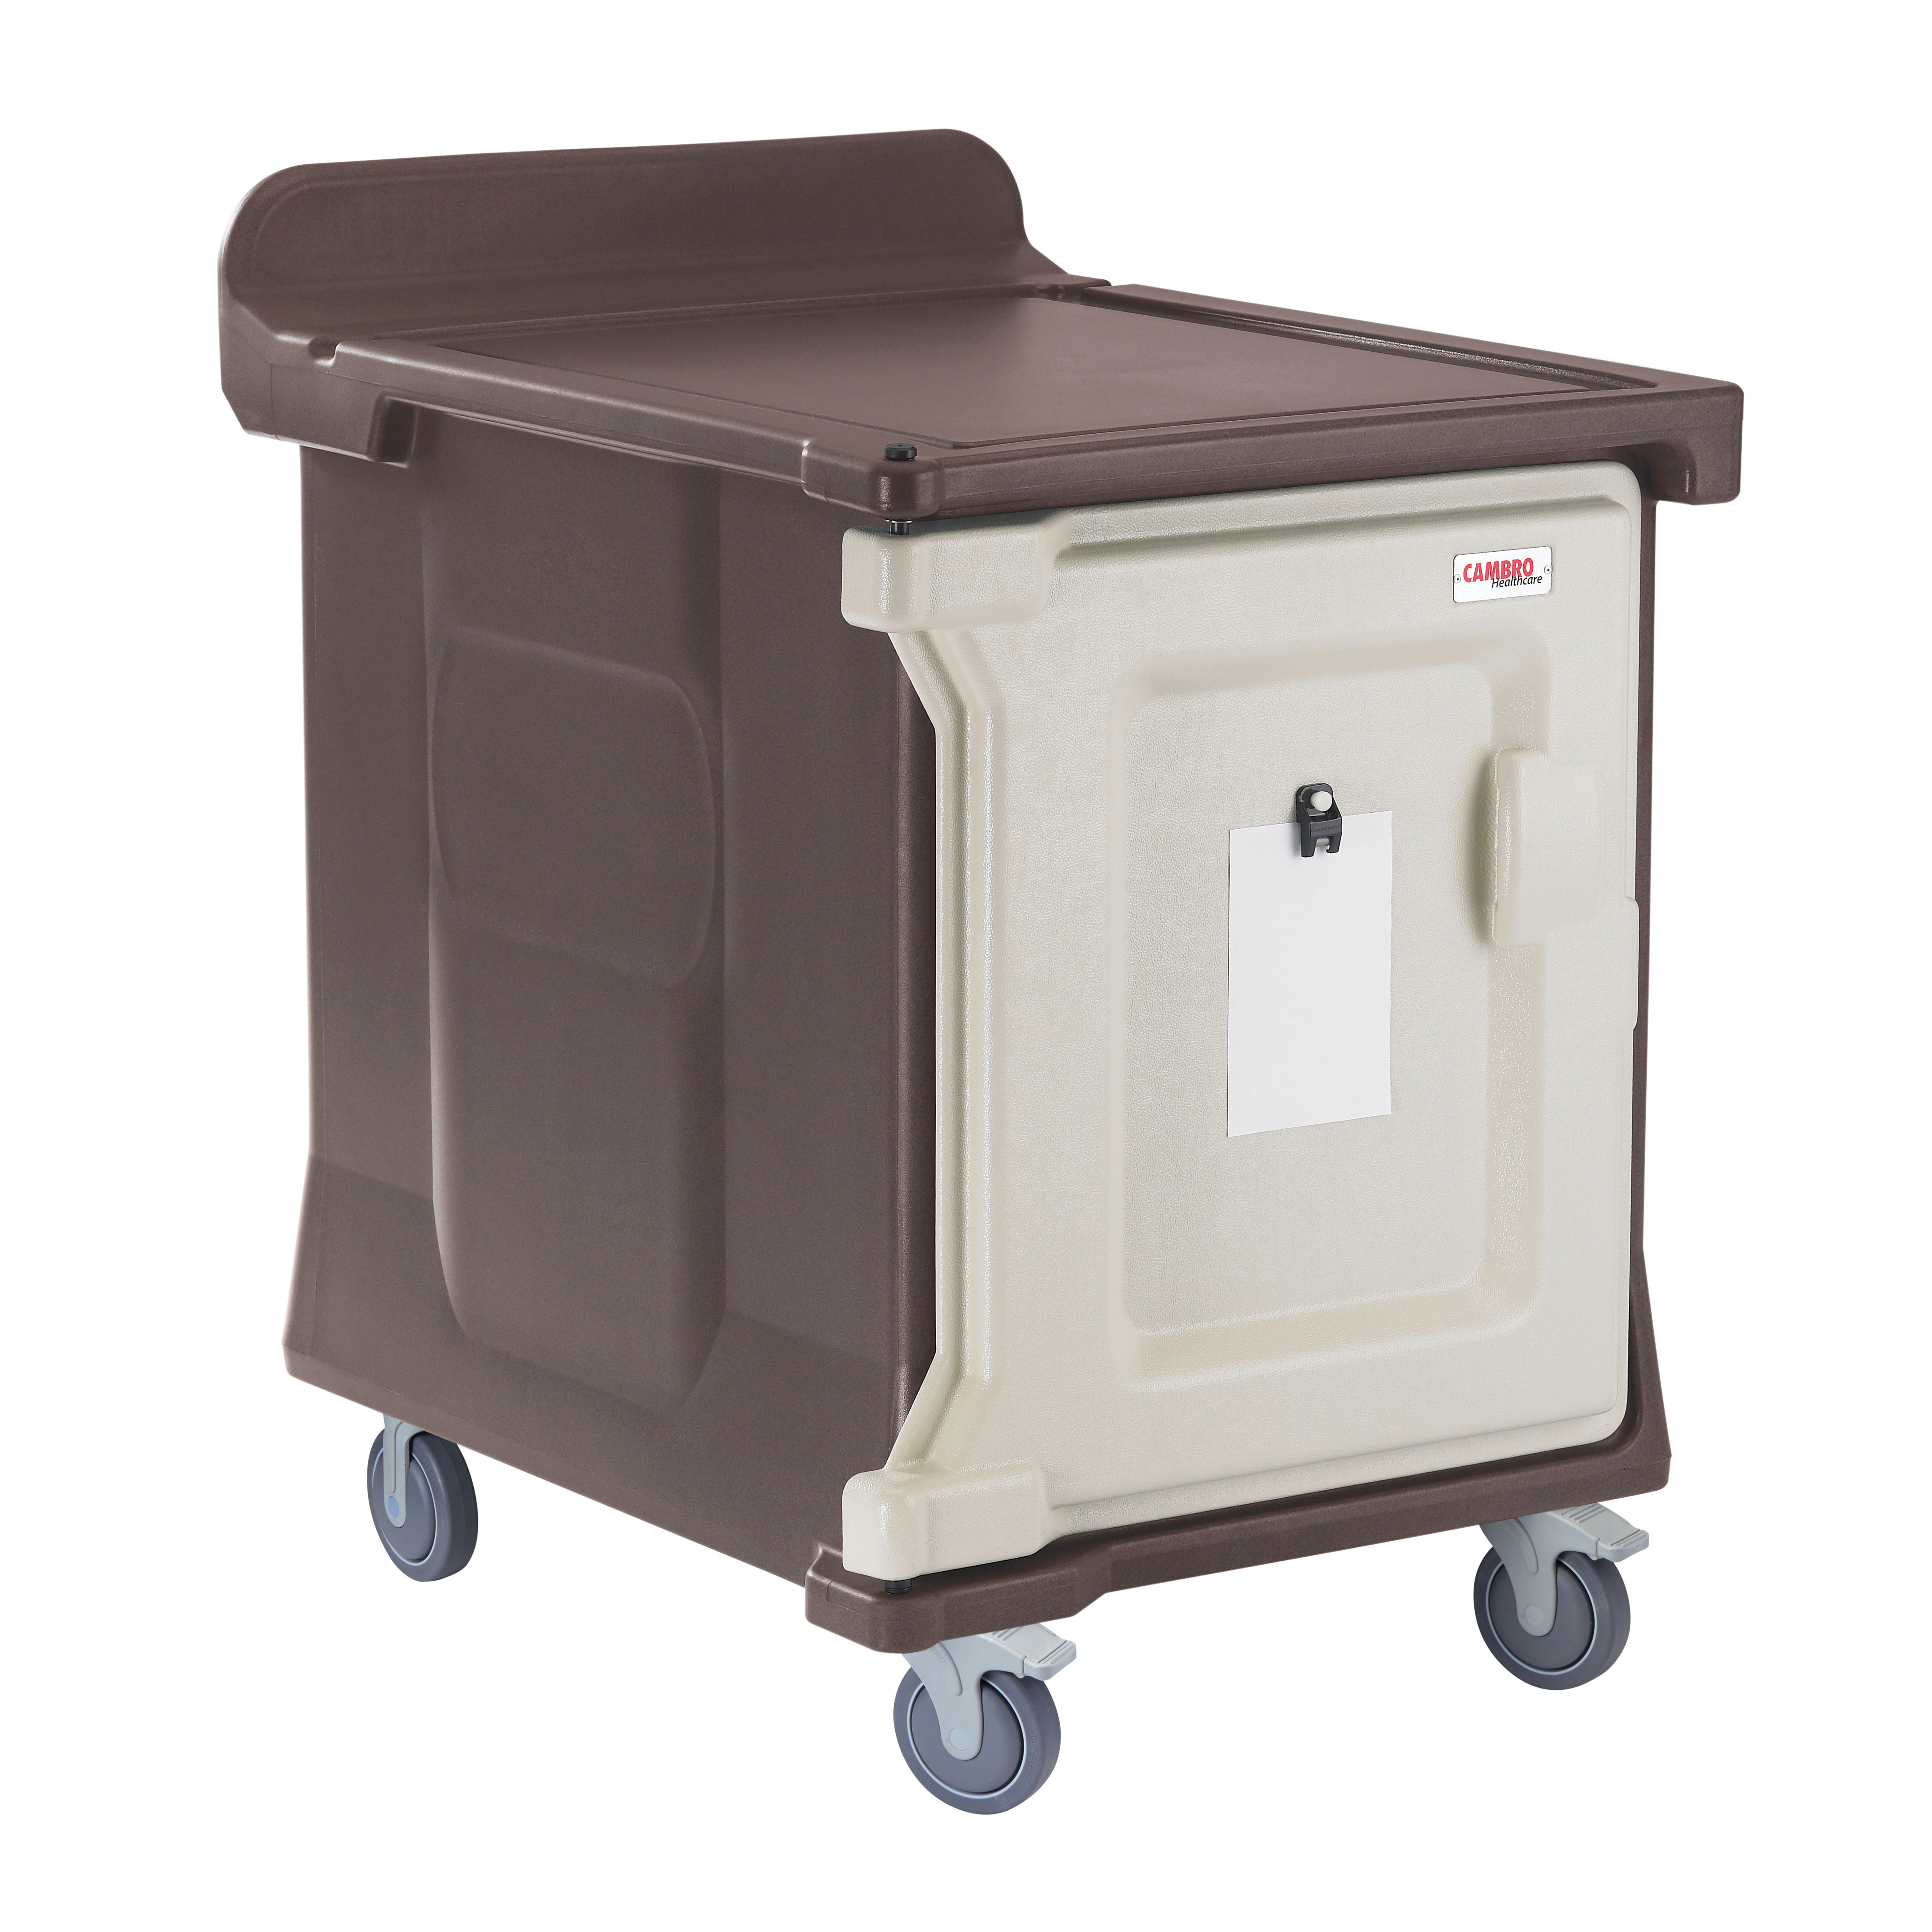 Cambro MDC1520S10DH194 cabinet, meal tray delivery